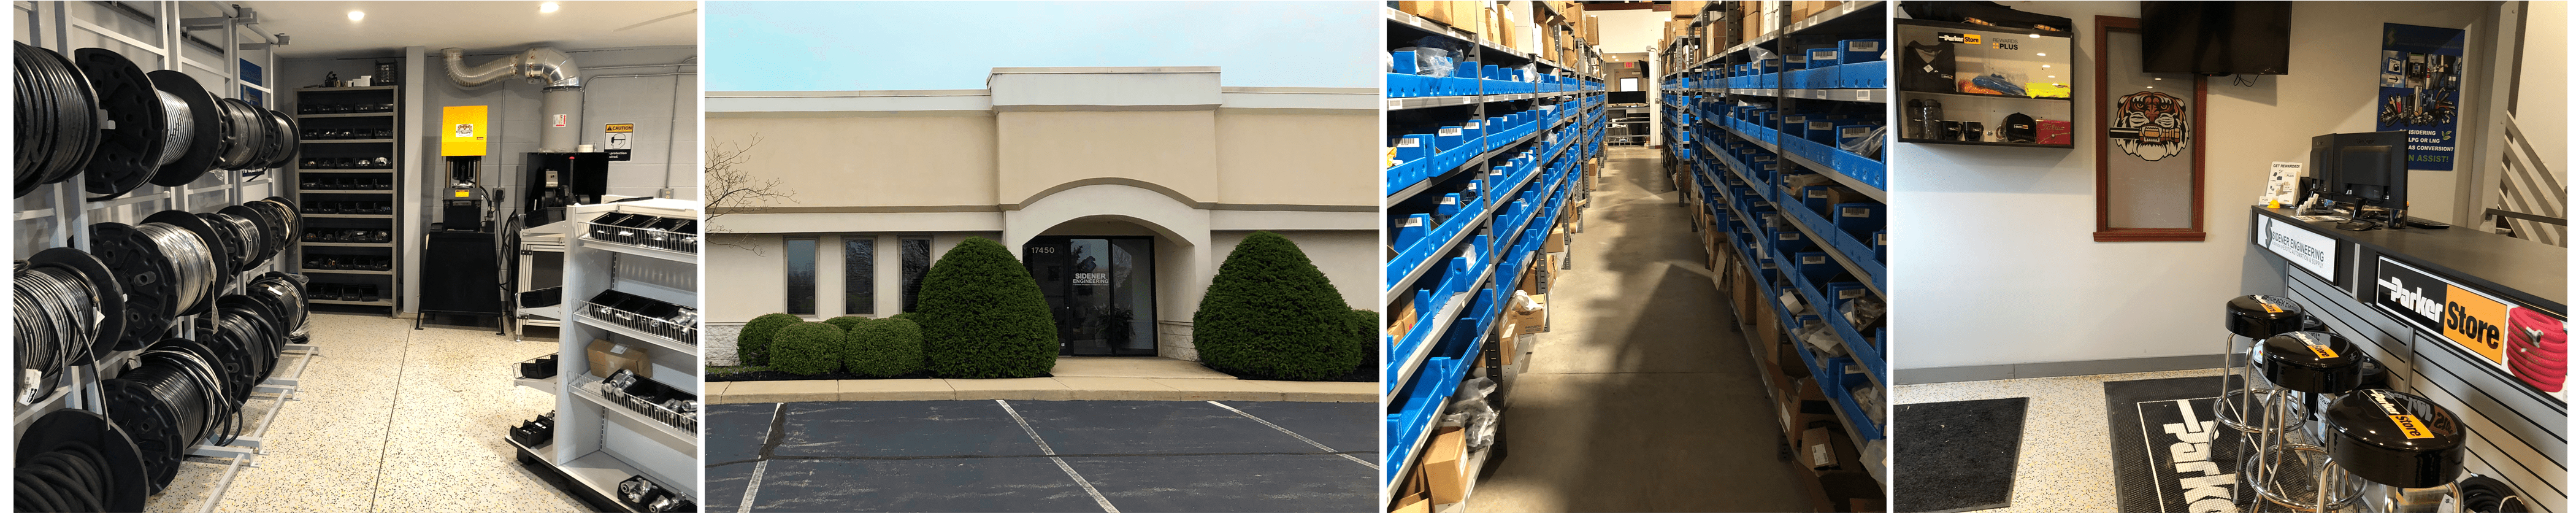 Exotic Automation & Supply - Noblesville